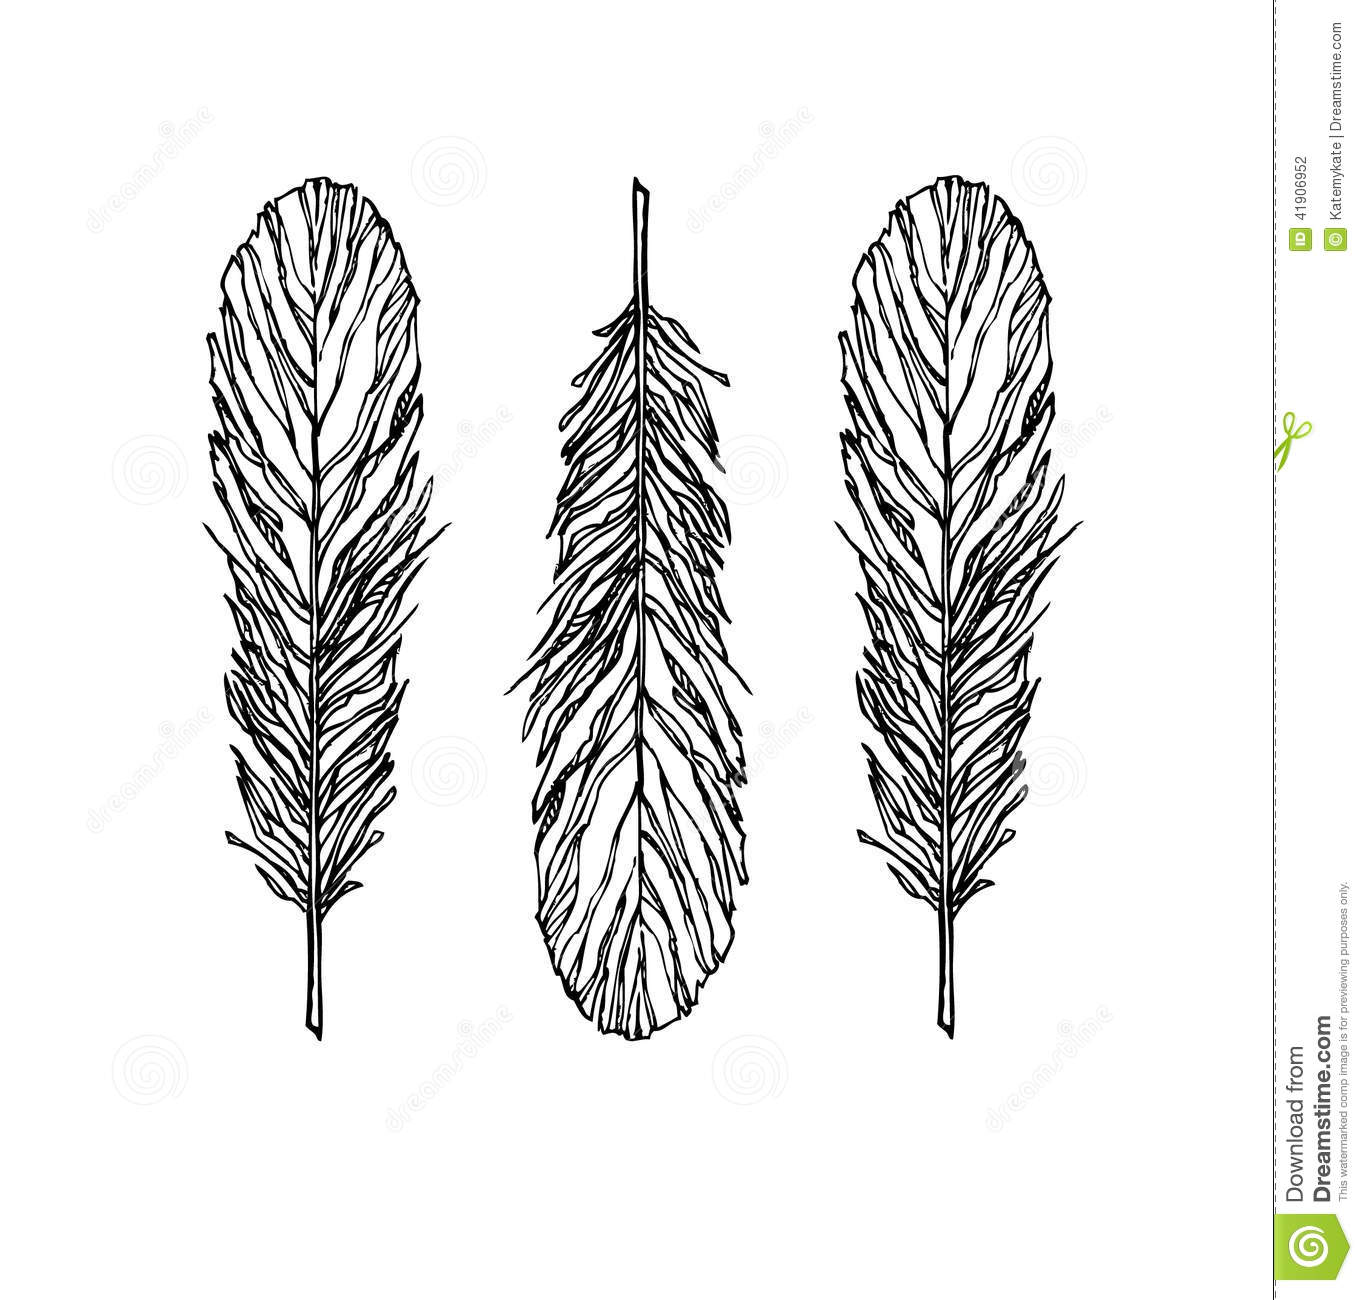 Vintage Bohemian Feather Big Set Isolated On White Auto Electrical Fuel Mercedes Filter Benz Location1996s500 Gallery